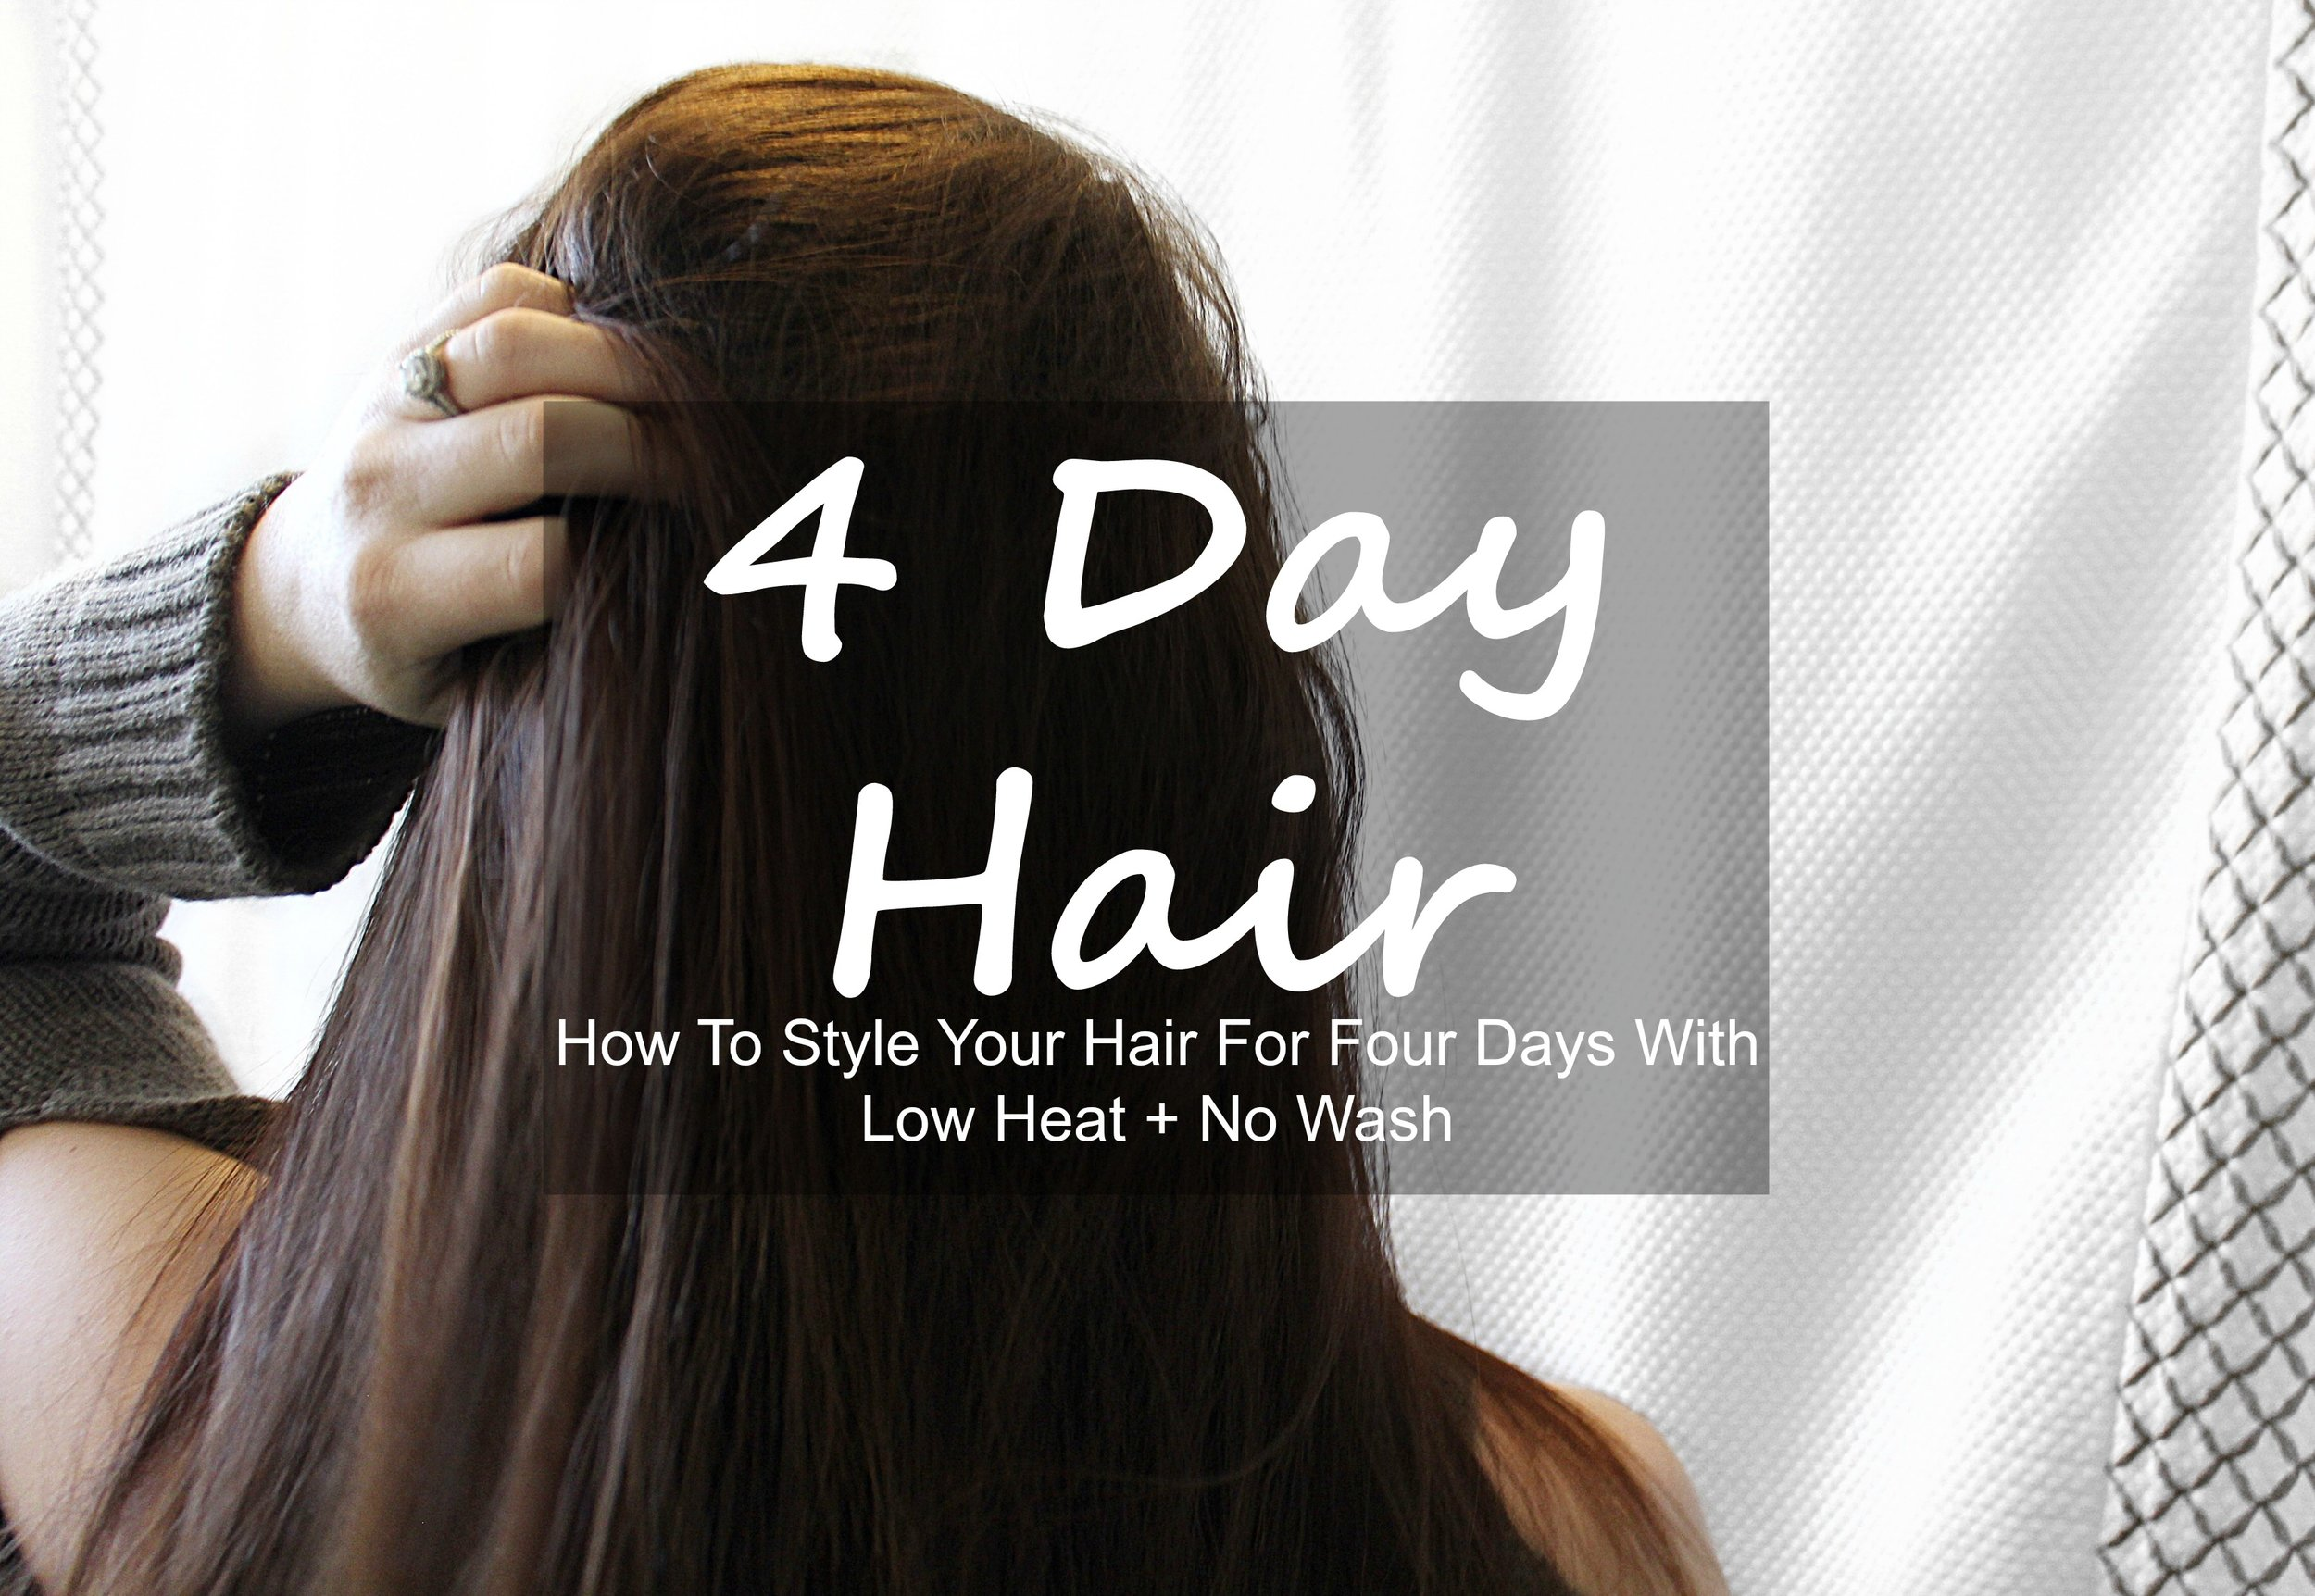 4-Day-Hair-How-To-Style-Your-Hair For Four Days With-Low-Heat-No-Wash.jpg